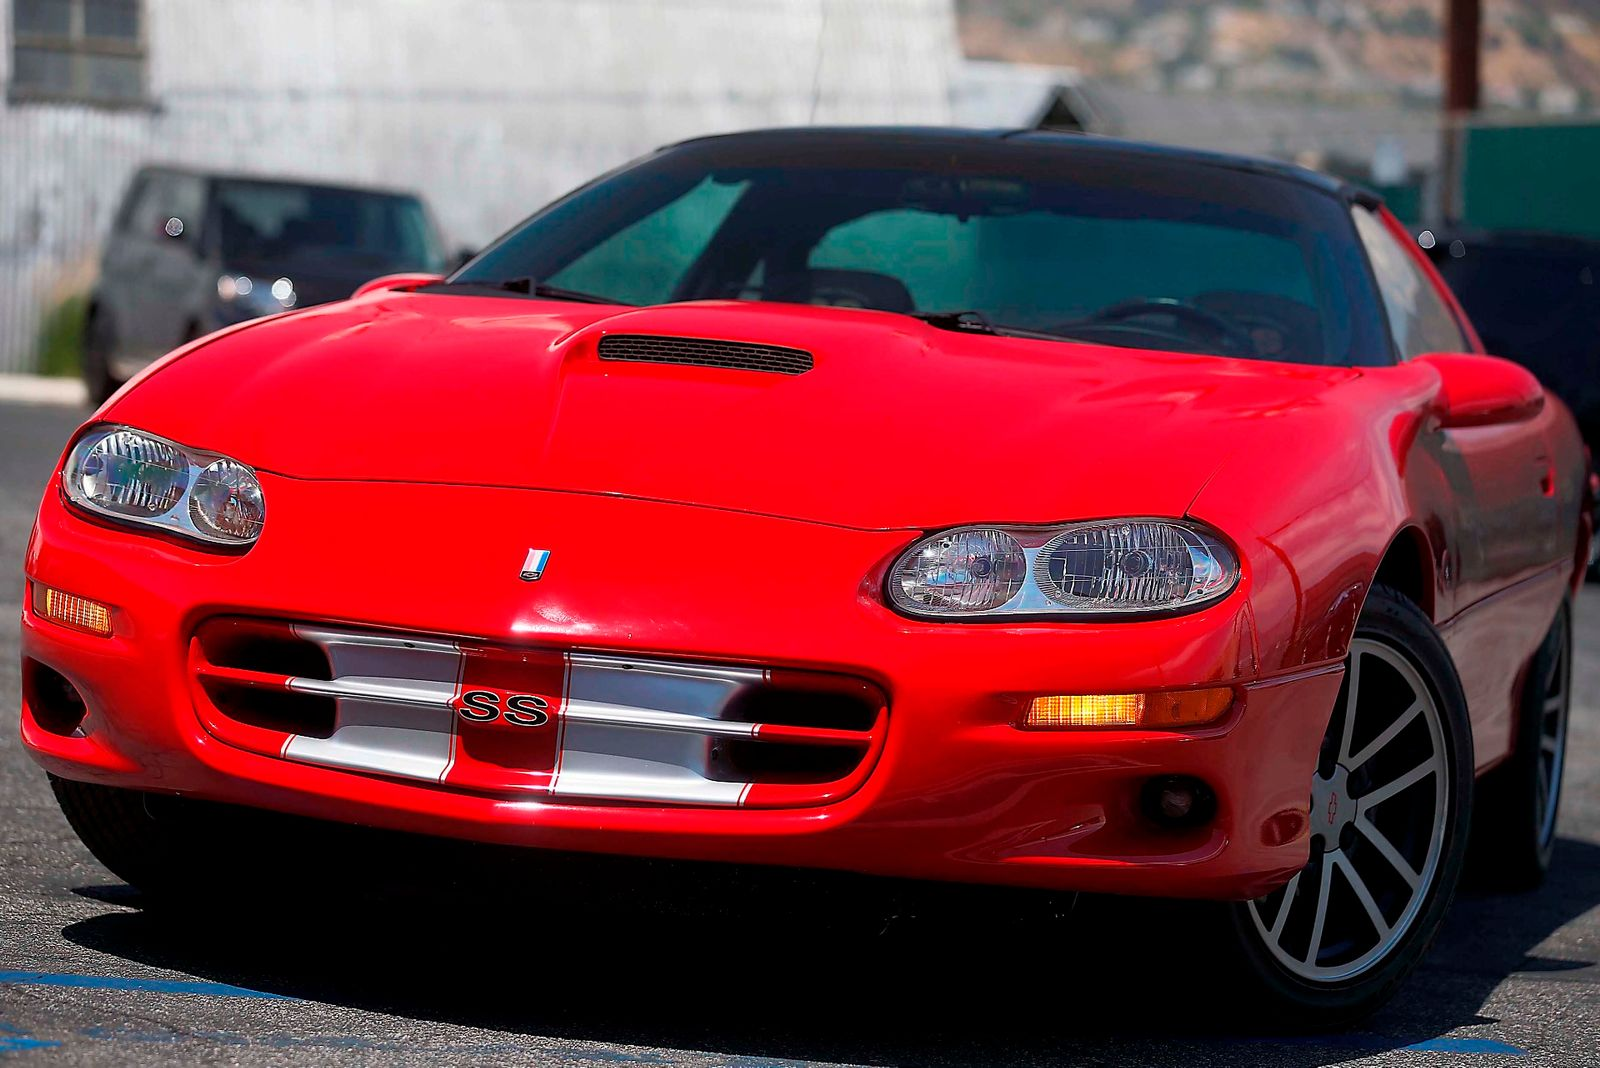 2002 chevrolet camaro z28 - ss - 35th anniversary edition city